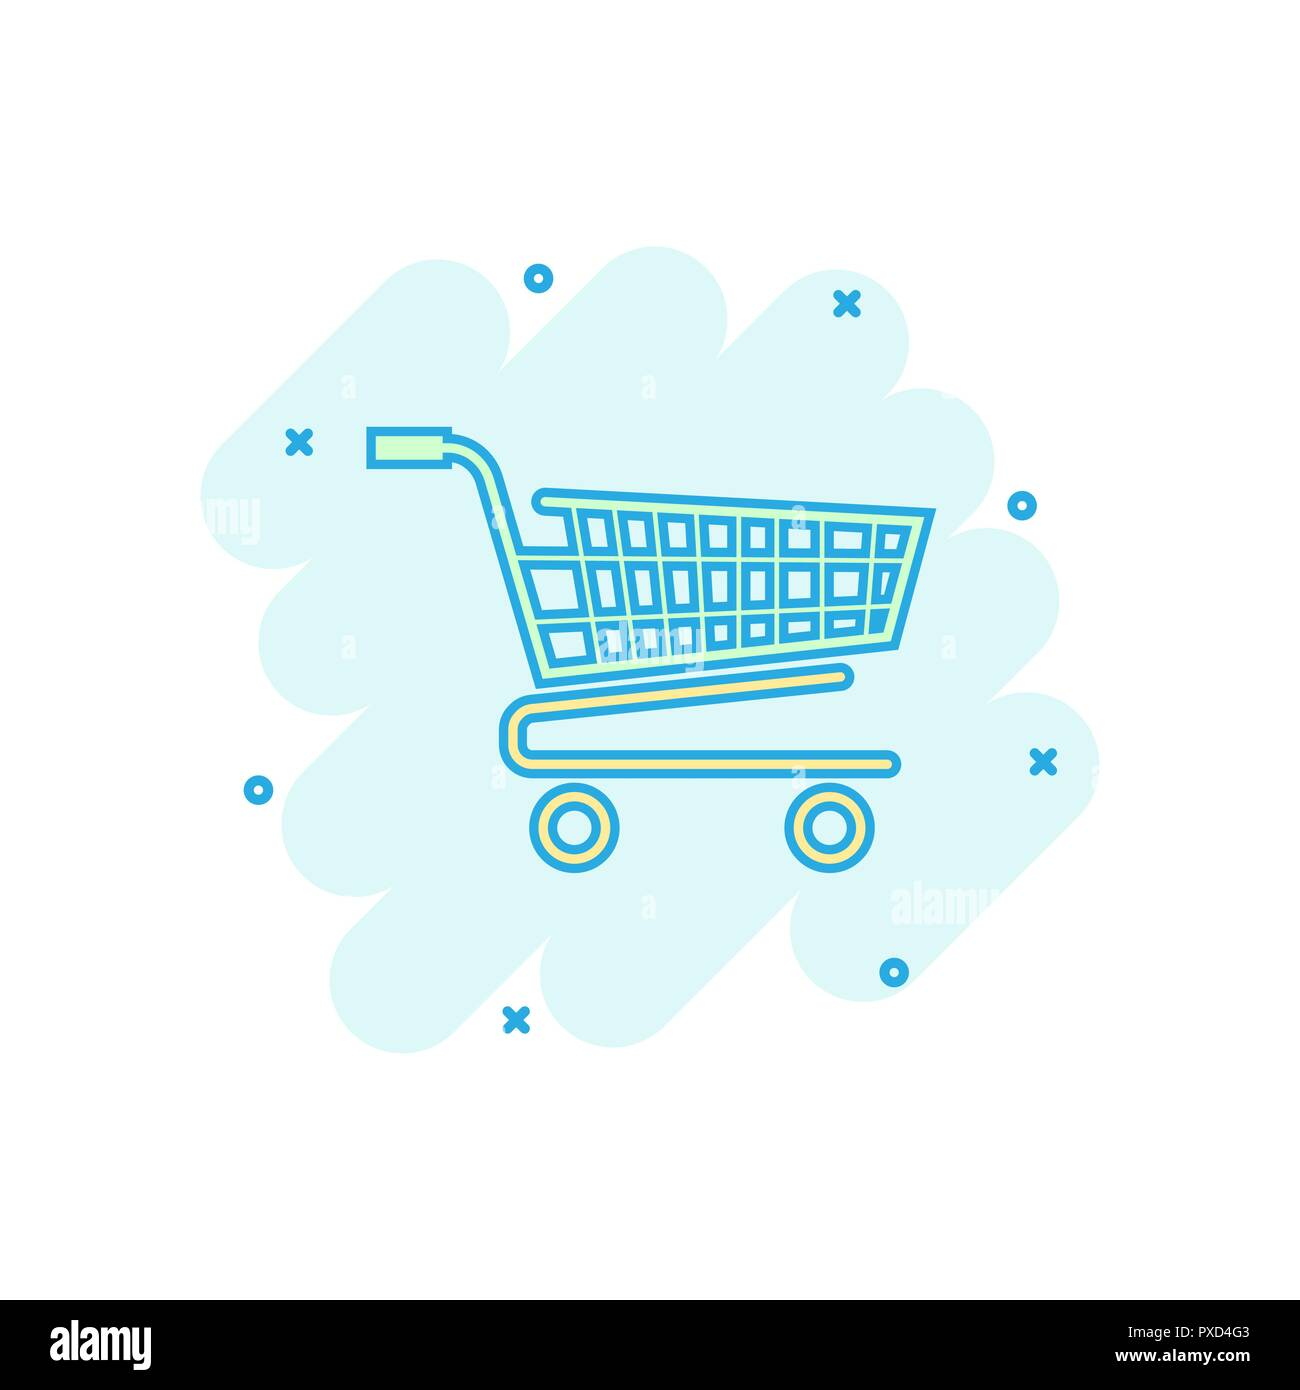 Vector cartoon shopping cart icon in comic style. Shop bag sign illustration pictogram. Mall business splash effect concept. - Stock Vector